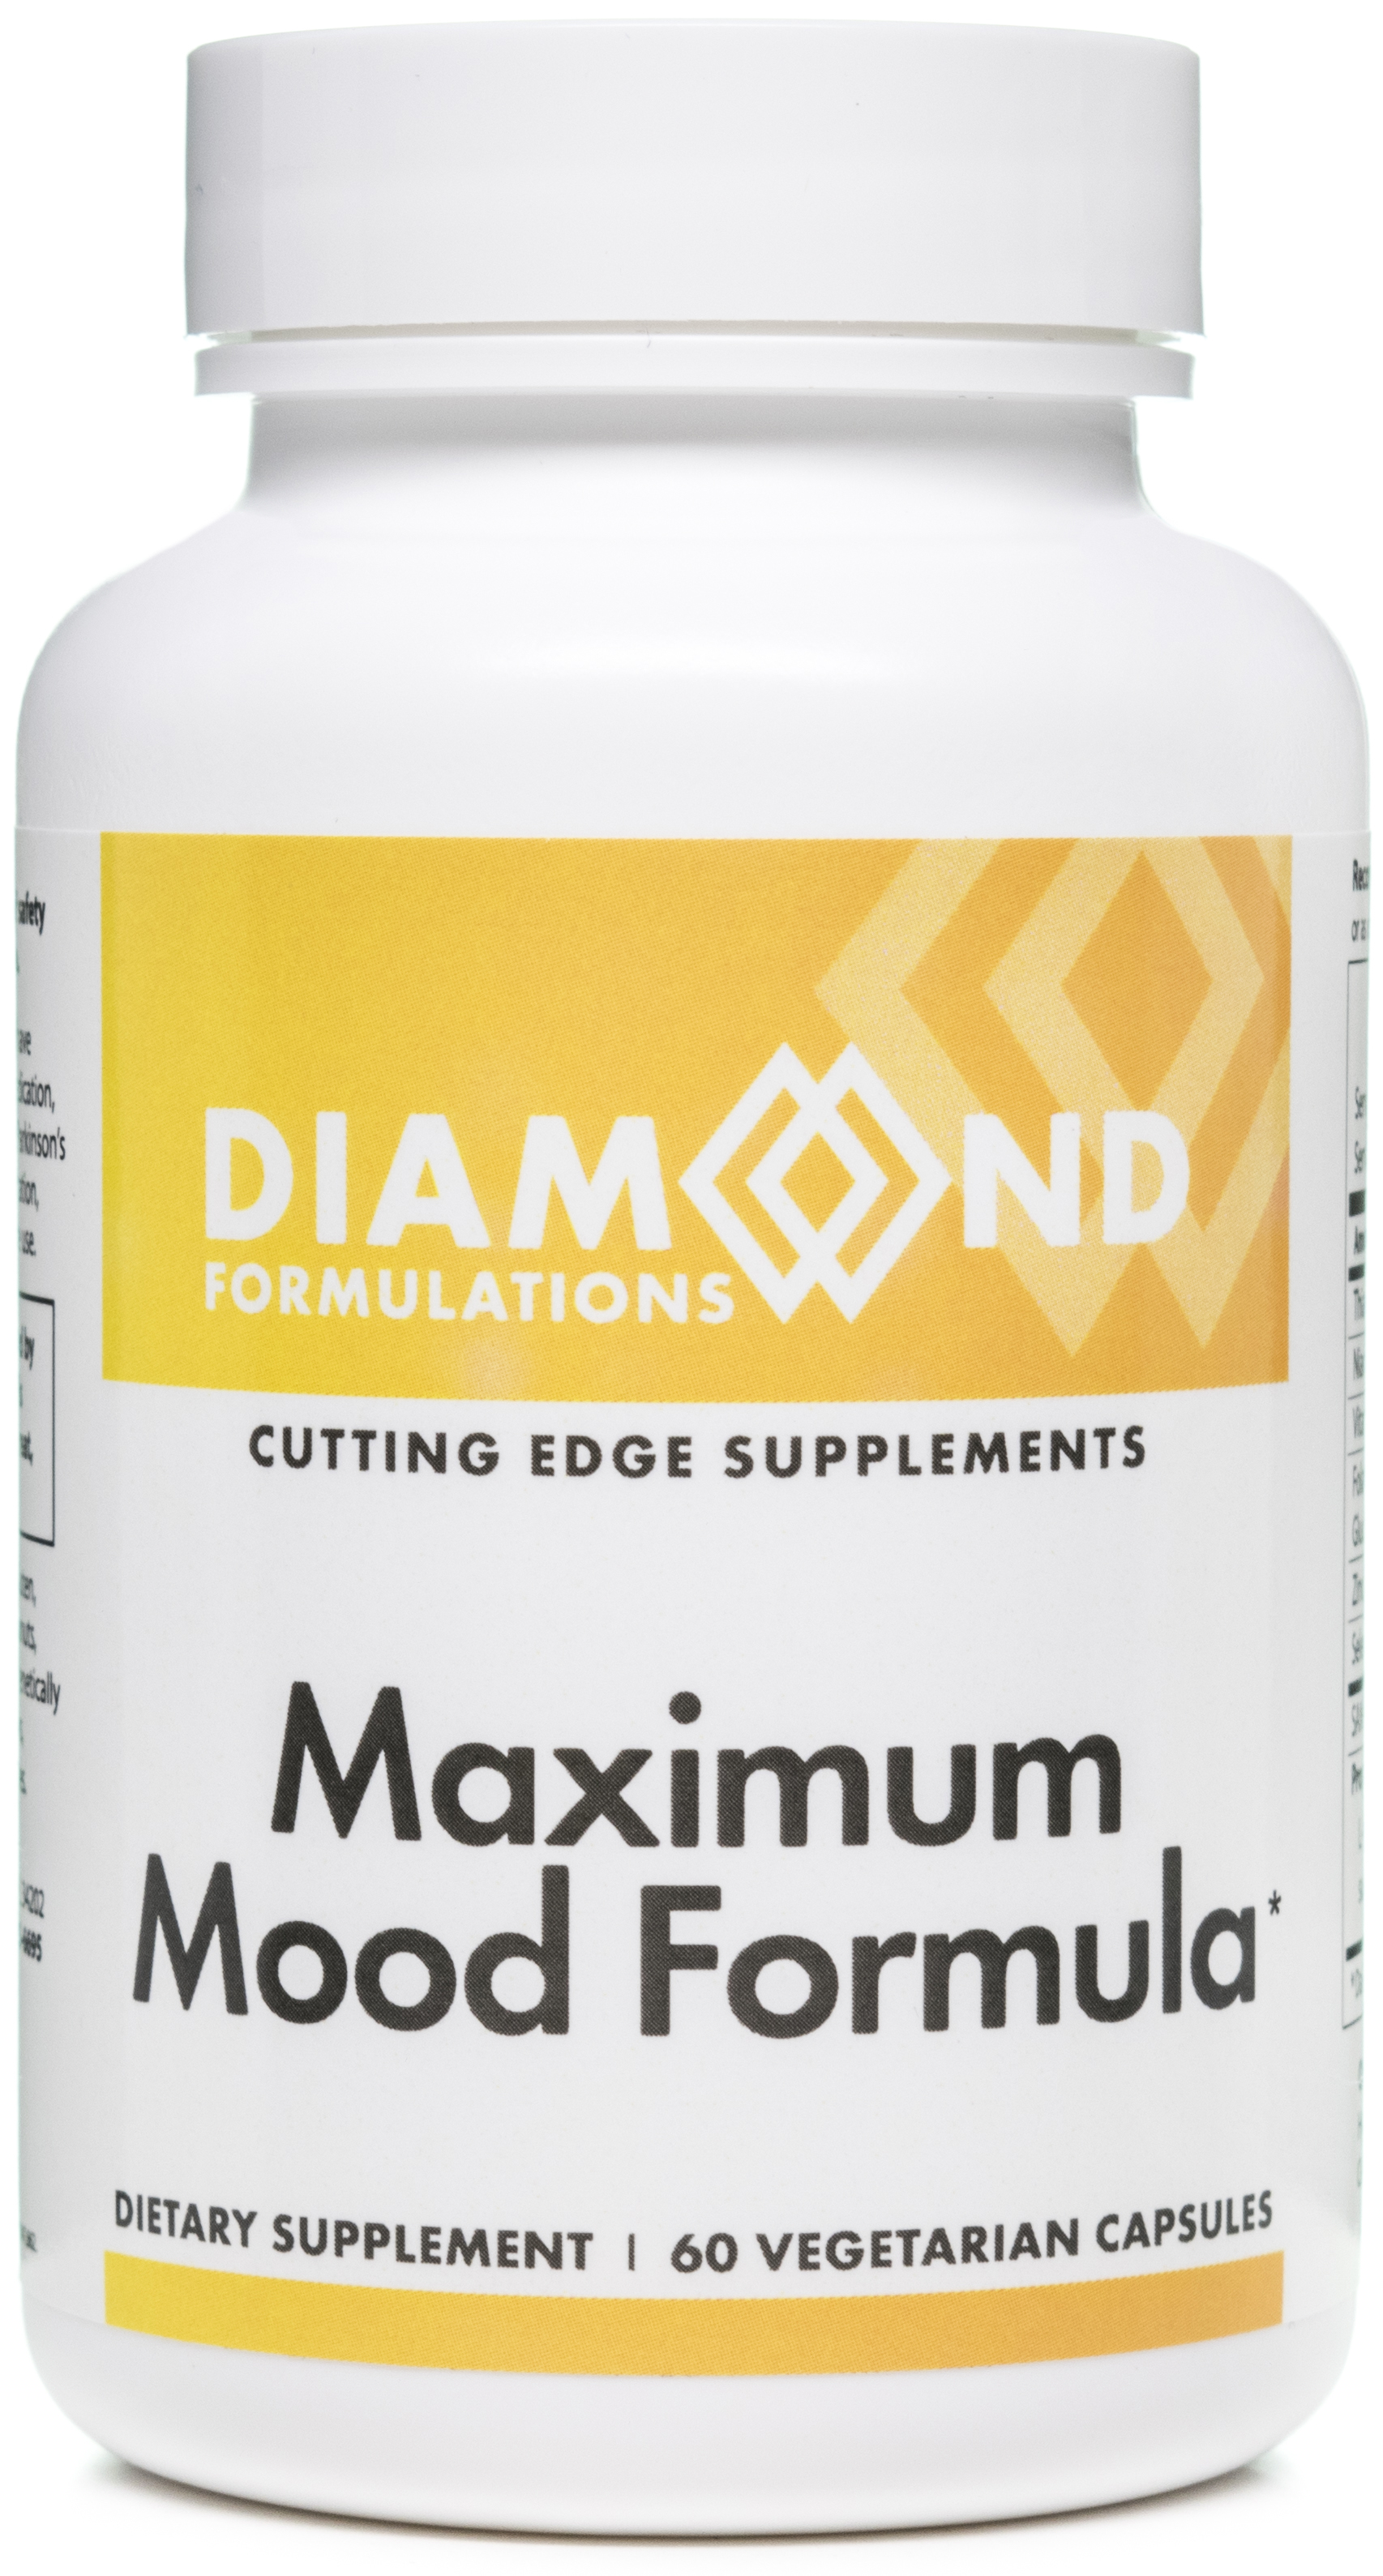 maximum-mood-formula-by-diamond-formulations.jpg